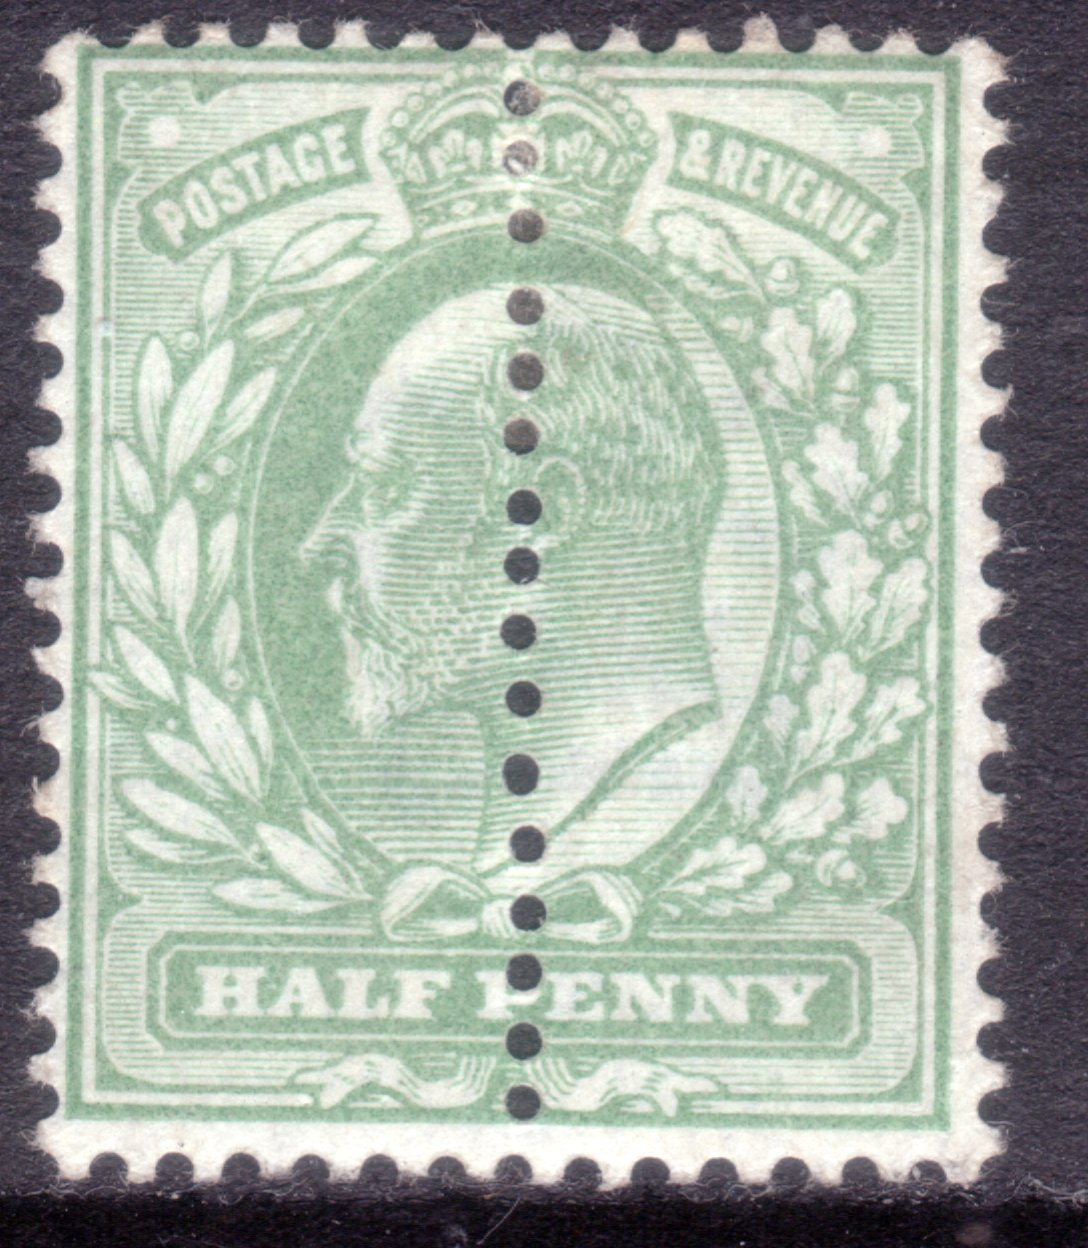 1904 ½d Yellowish Green Mint Perforation Variety